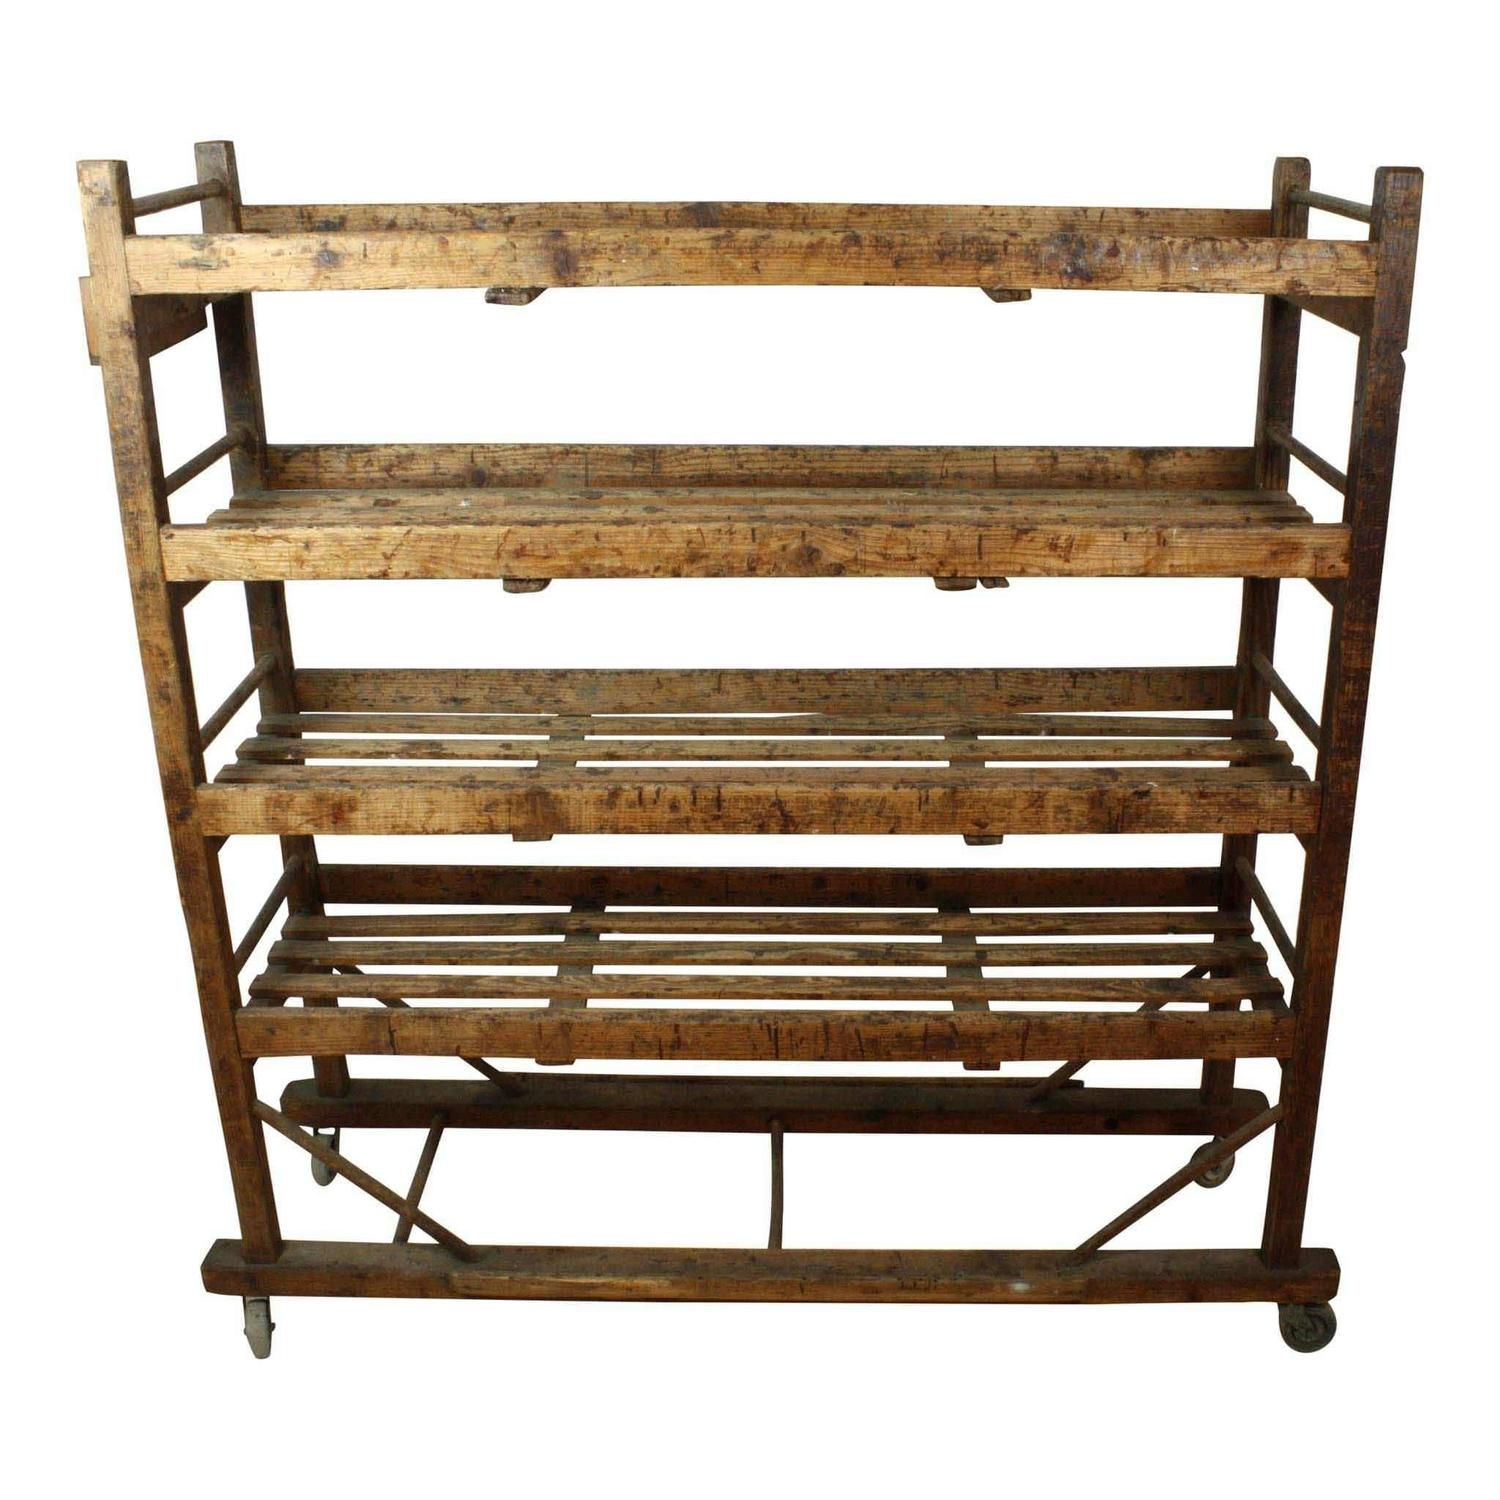 19th Century European Cobblers Shoe Drying Rack See More Antique And Modern Shelves At Https Www 1stdibs Com Furn Wooden Wine Rack Wooden Shoes Drying Rack